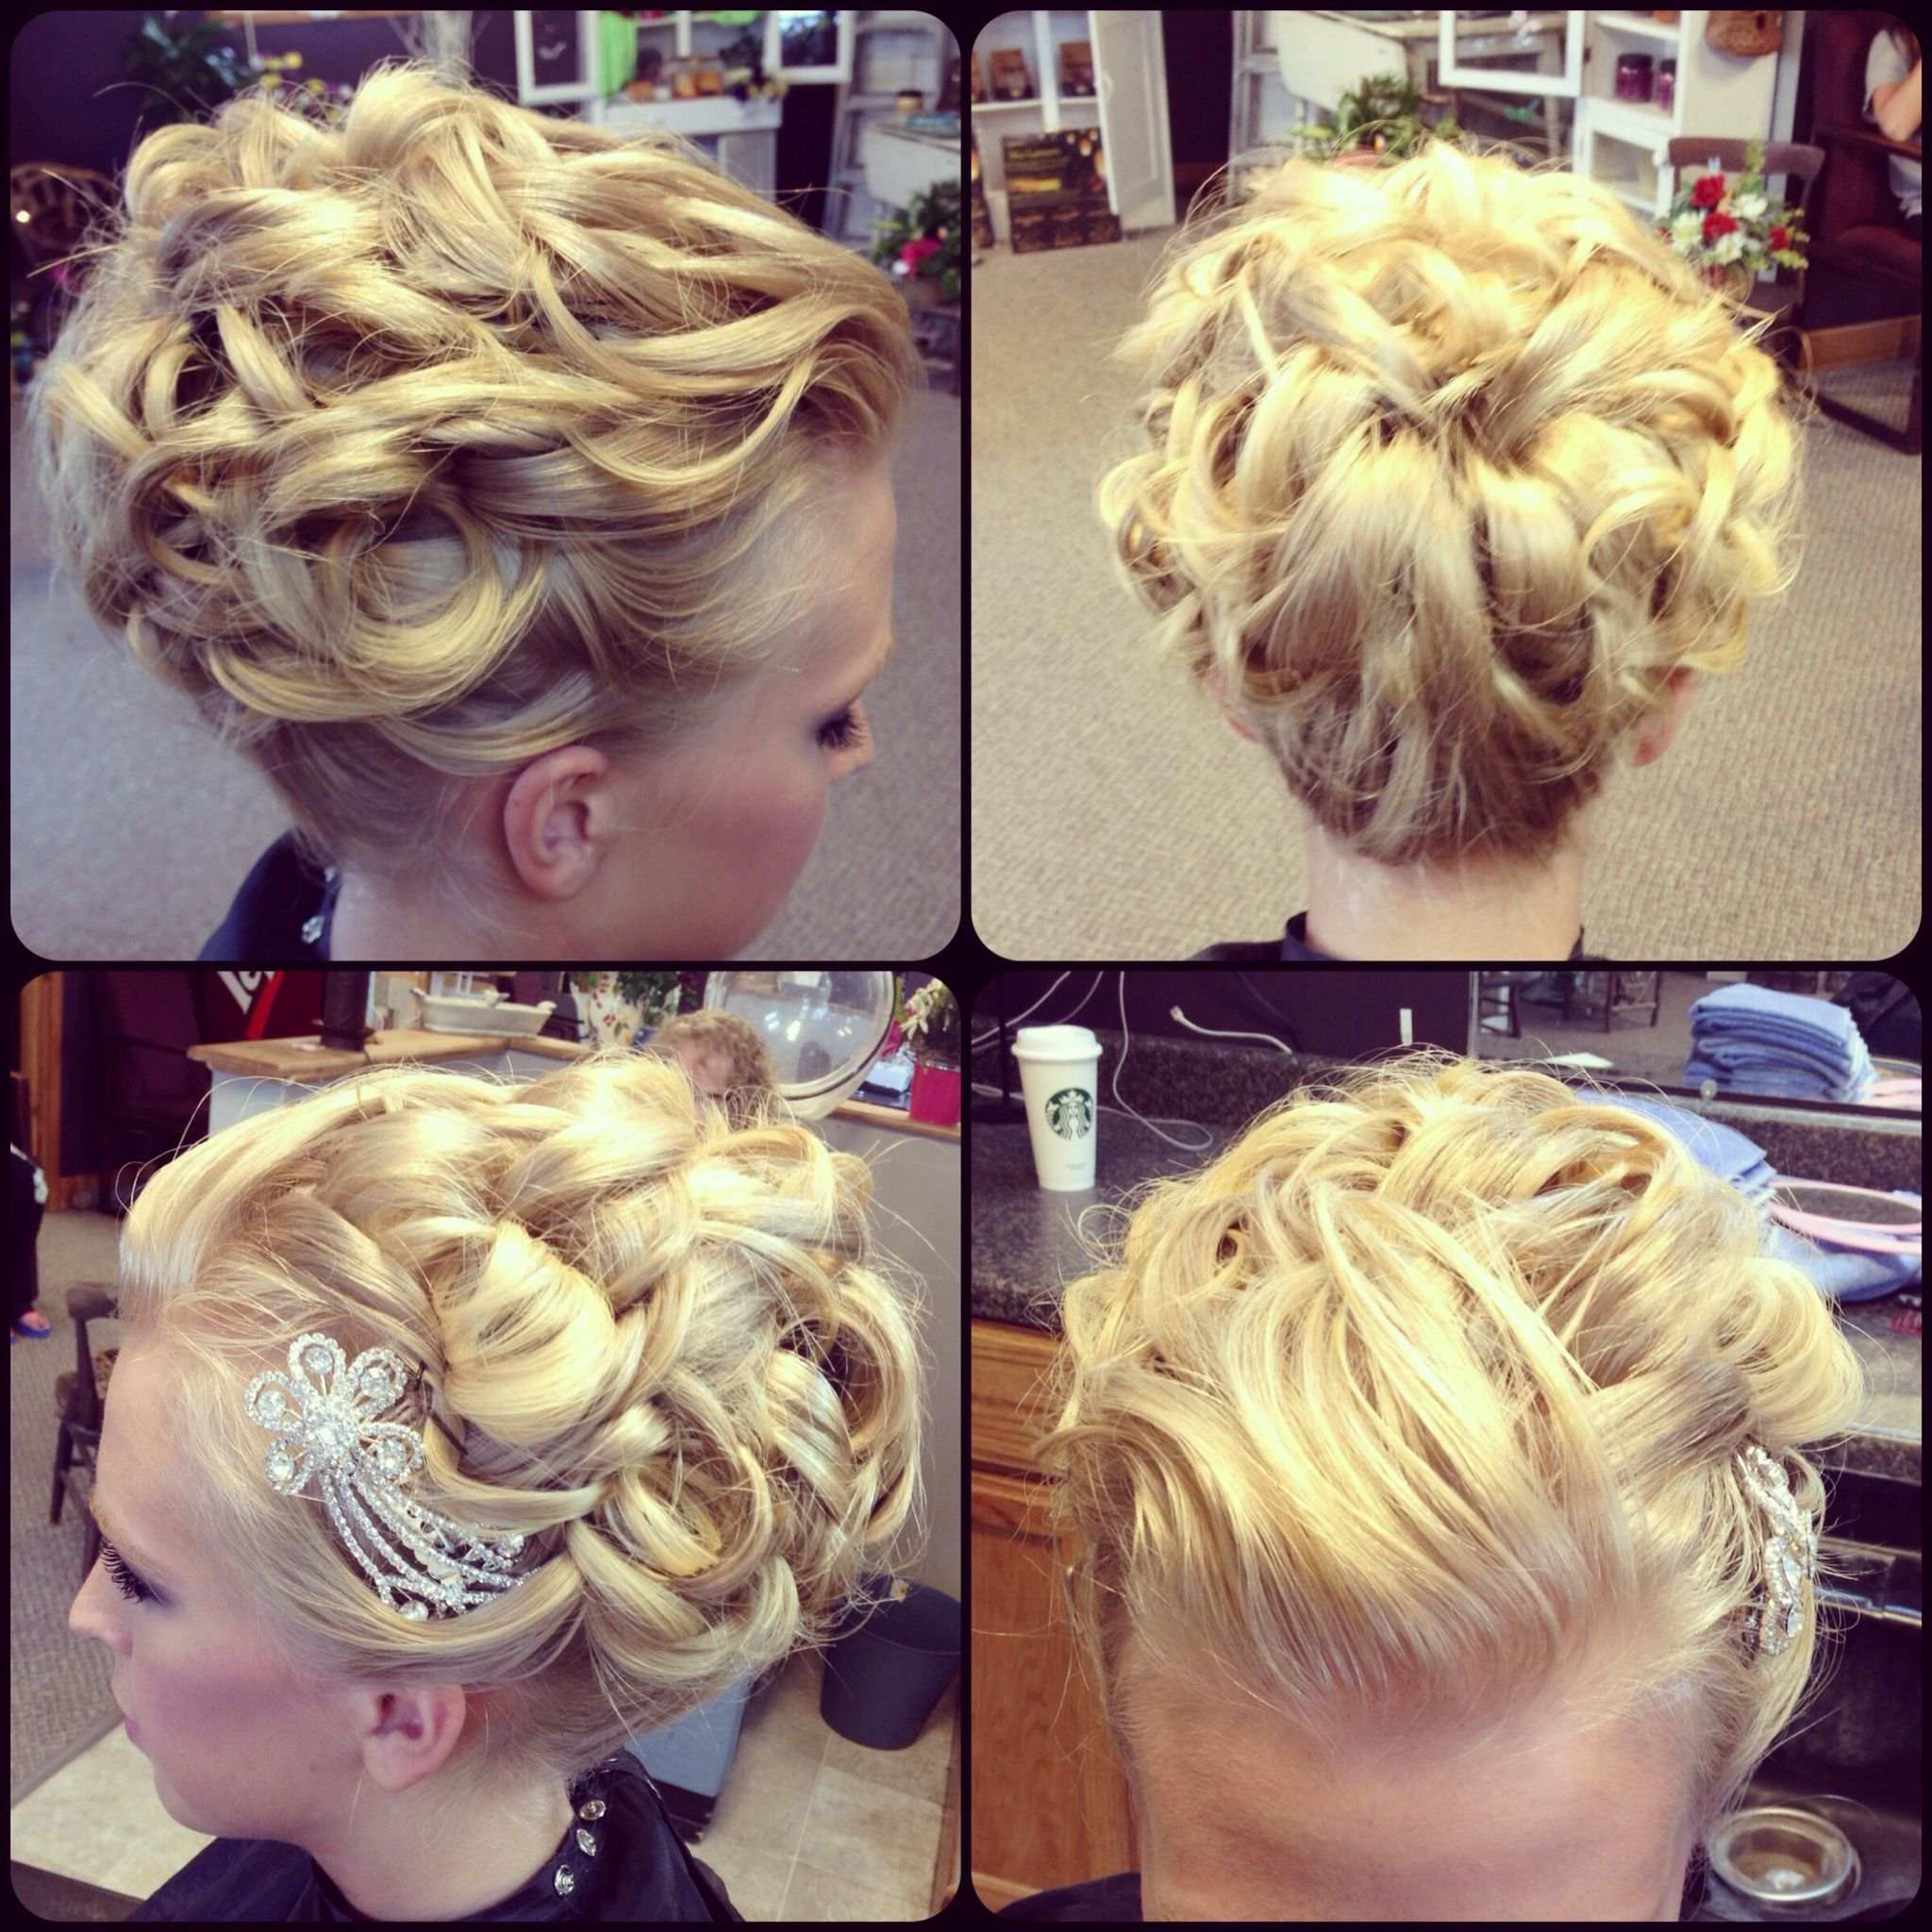 prom hair updo upstyle blonde curls curly pinned up cute